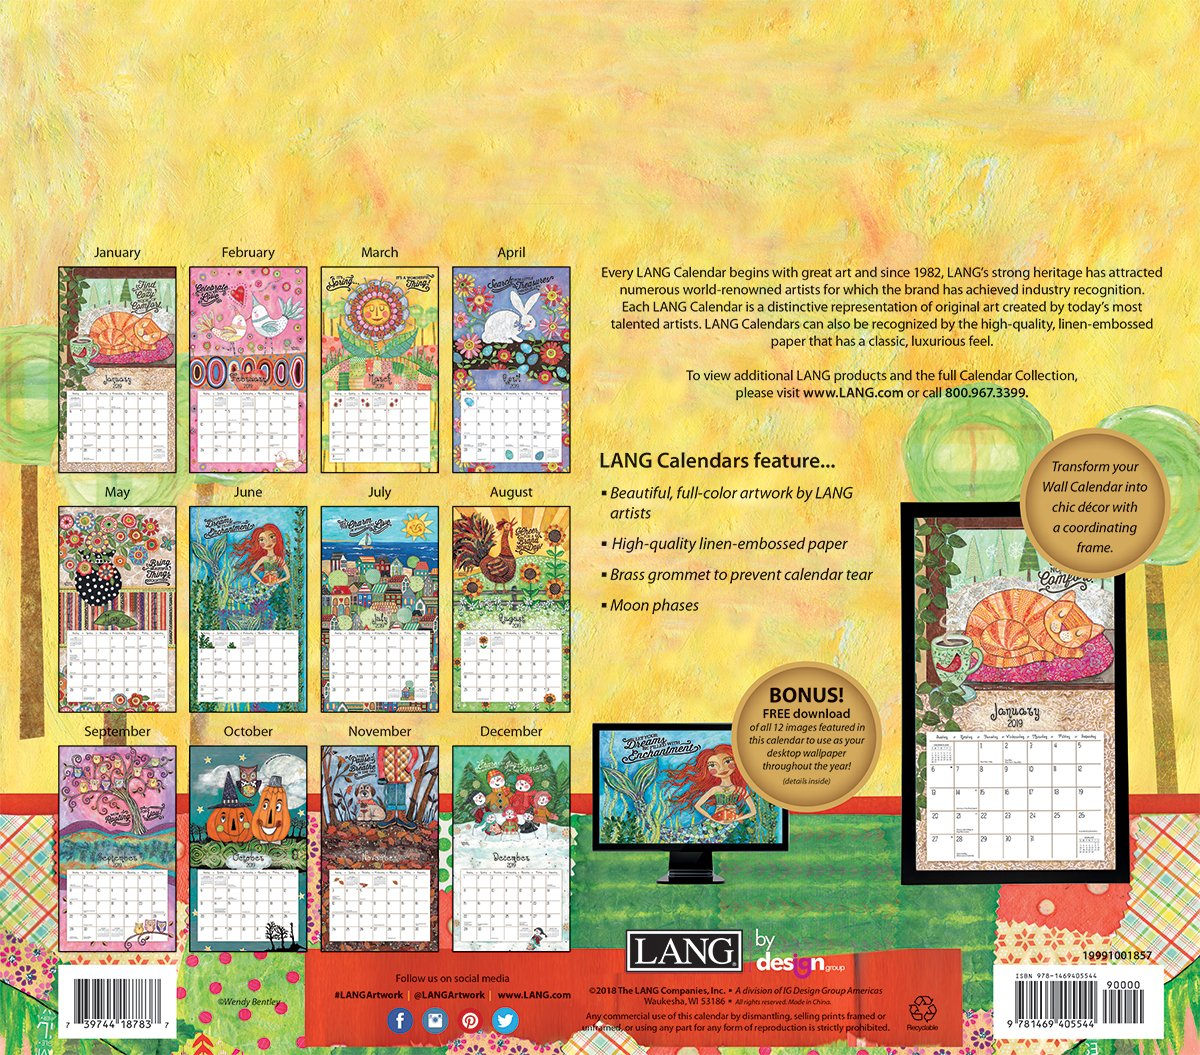 The Lang Companies Favorite Things 2019 Wall Calendar (19991001857) by The LANG Companies (Image #2)